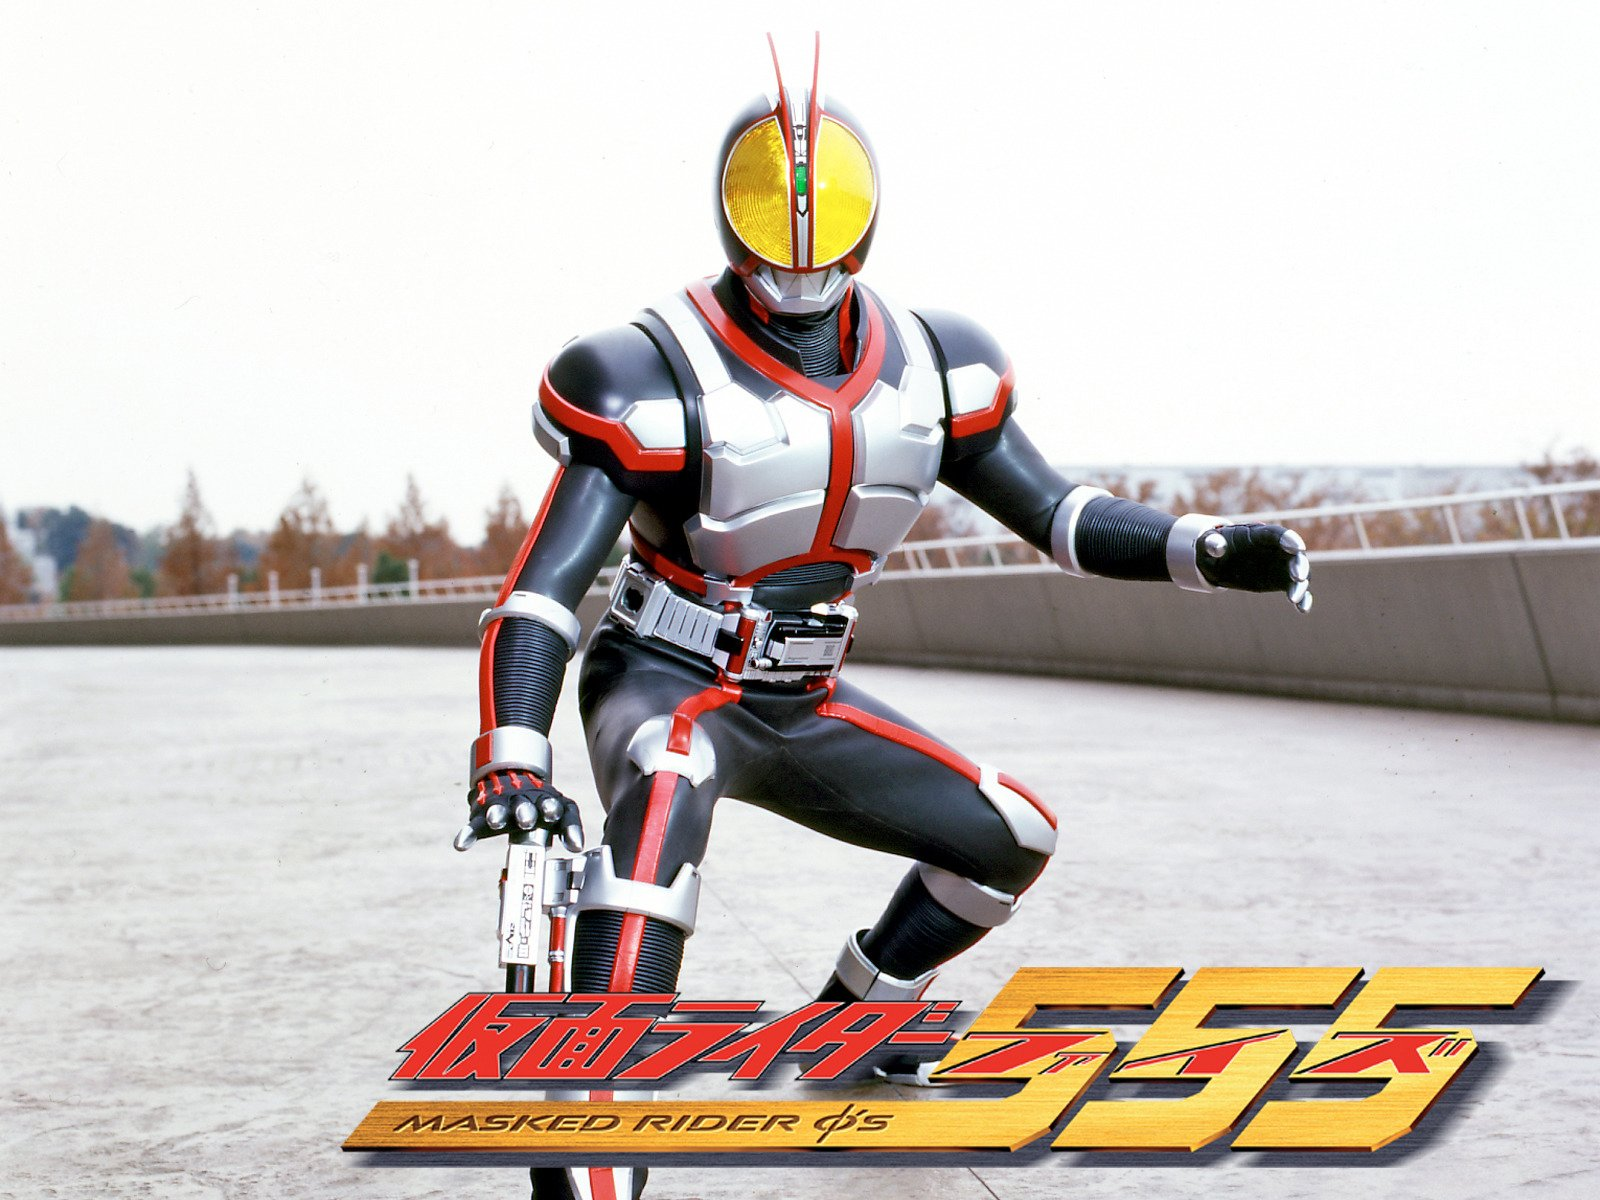 Amazon Co Jp 劇場版 仮面ライダーカブト god speed love